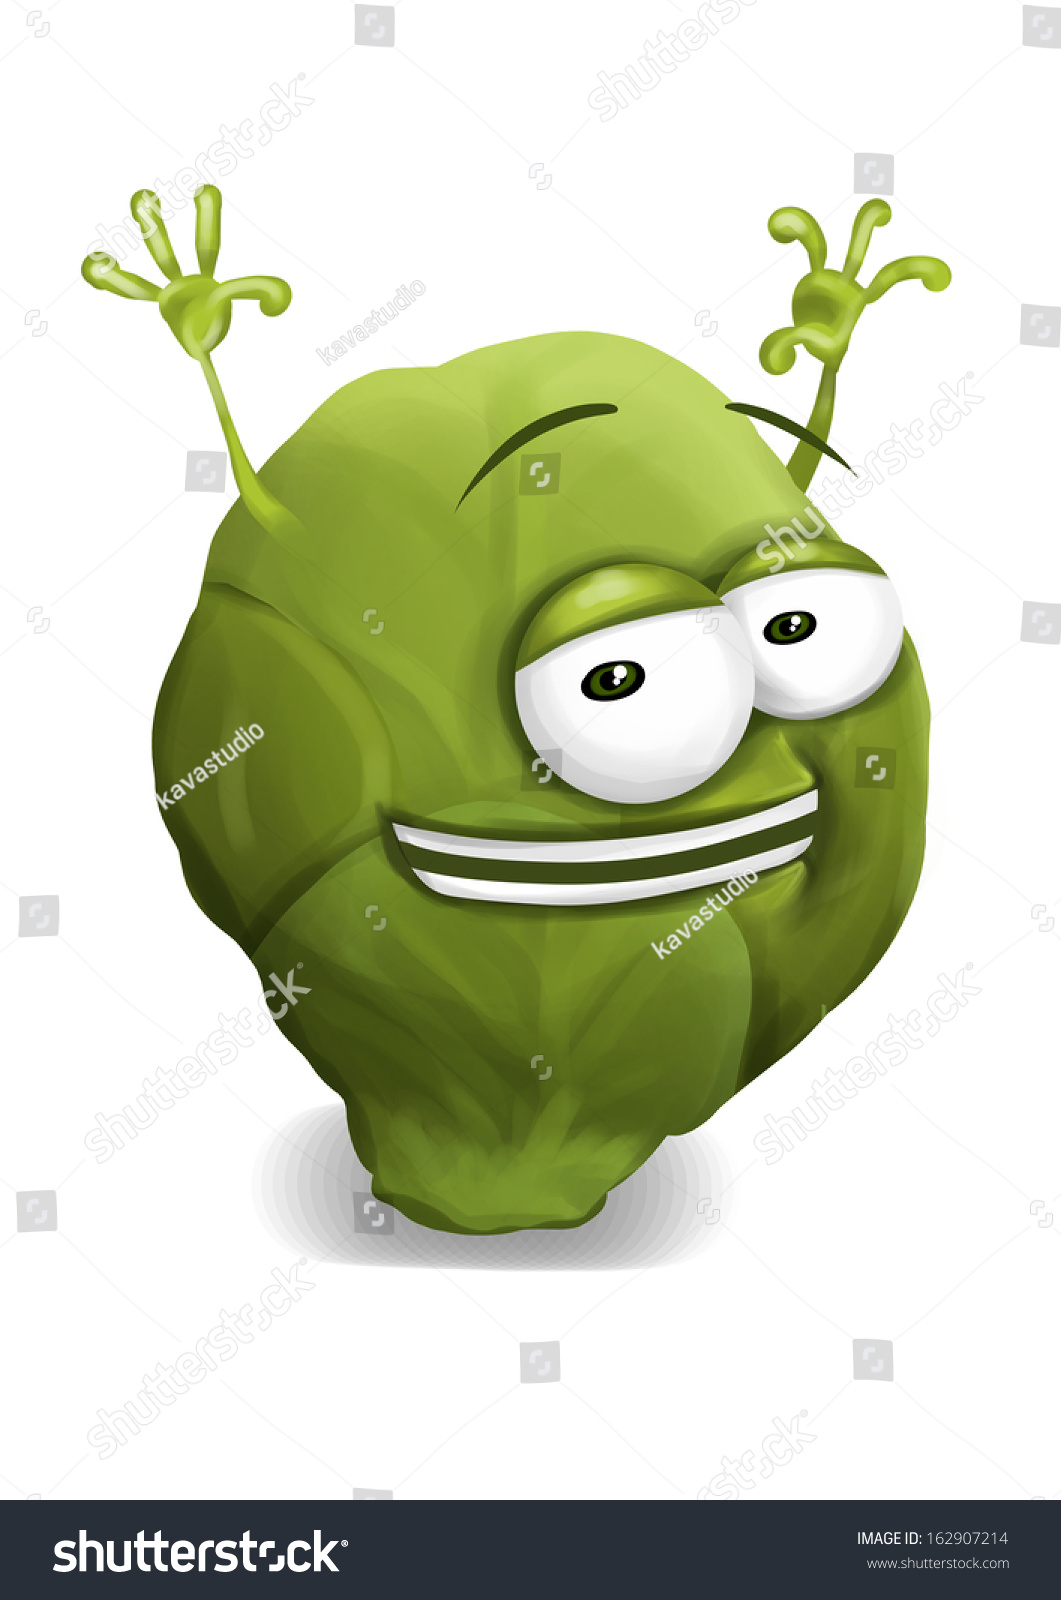 Funny Pictures Of Brussel Sprouts : funny, pictures, brussel, sprouts, Happy, Brussel, Sprouts, Funny, Brussels, Stock, Illustration, 162907214